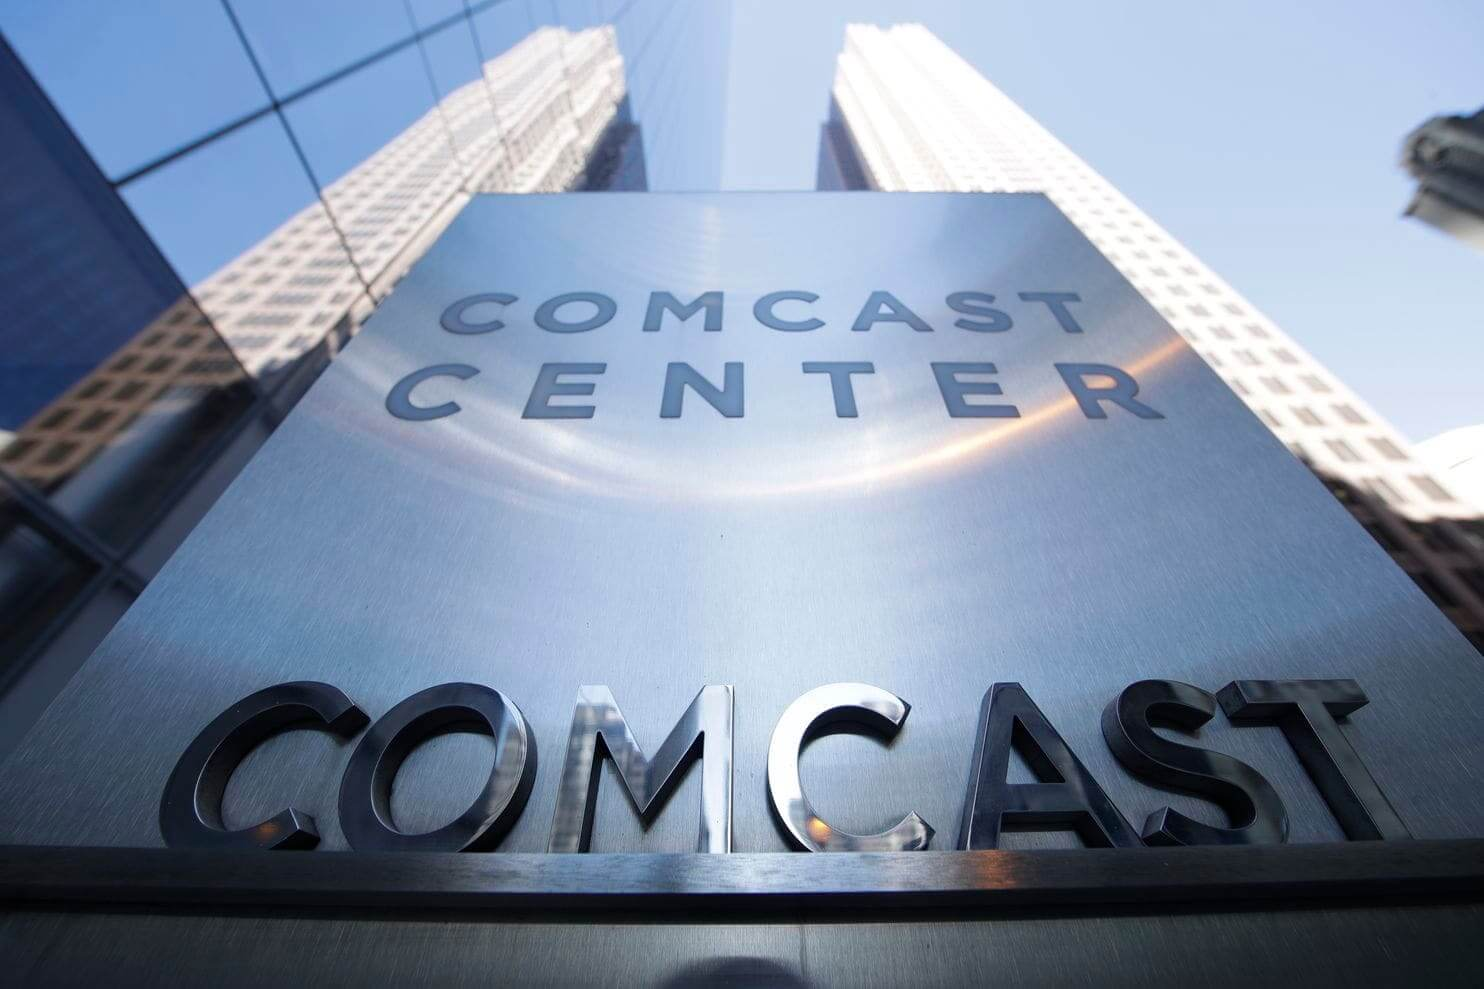 Comcast Corp. (CMCSA) Charges at Google with a New Antitrust Case